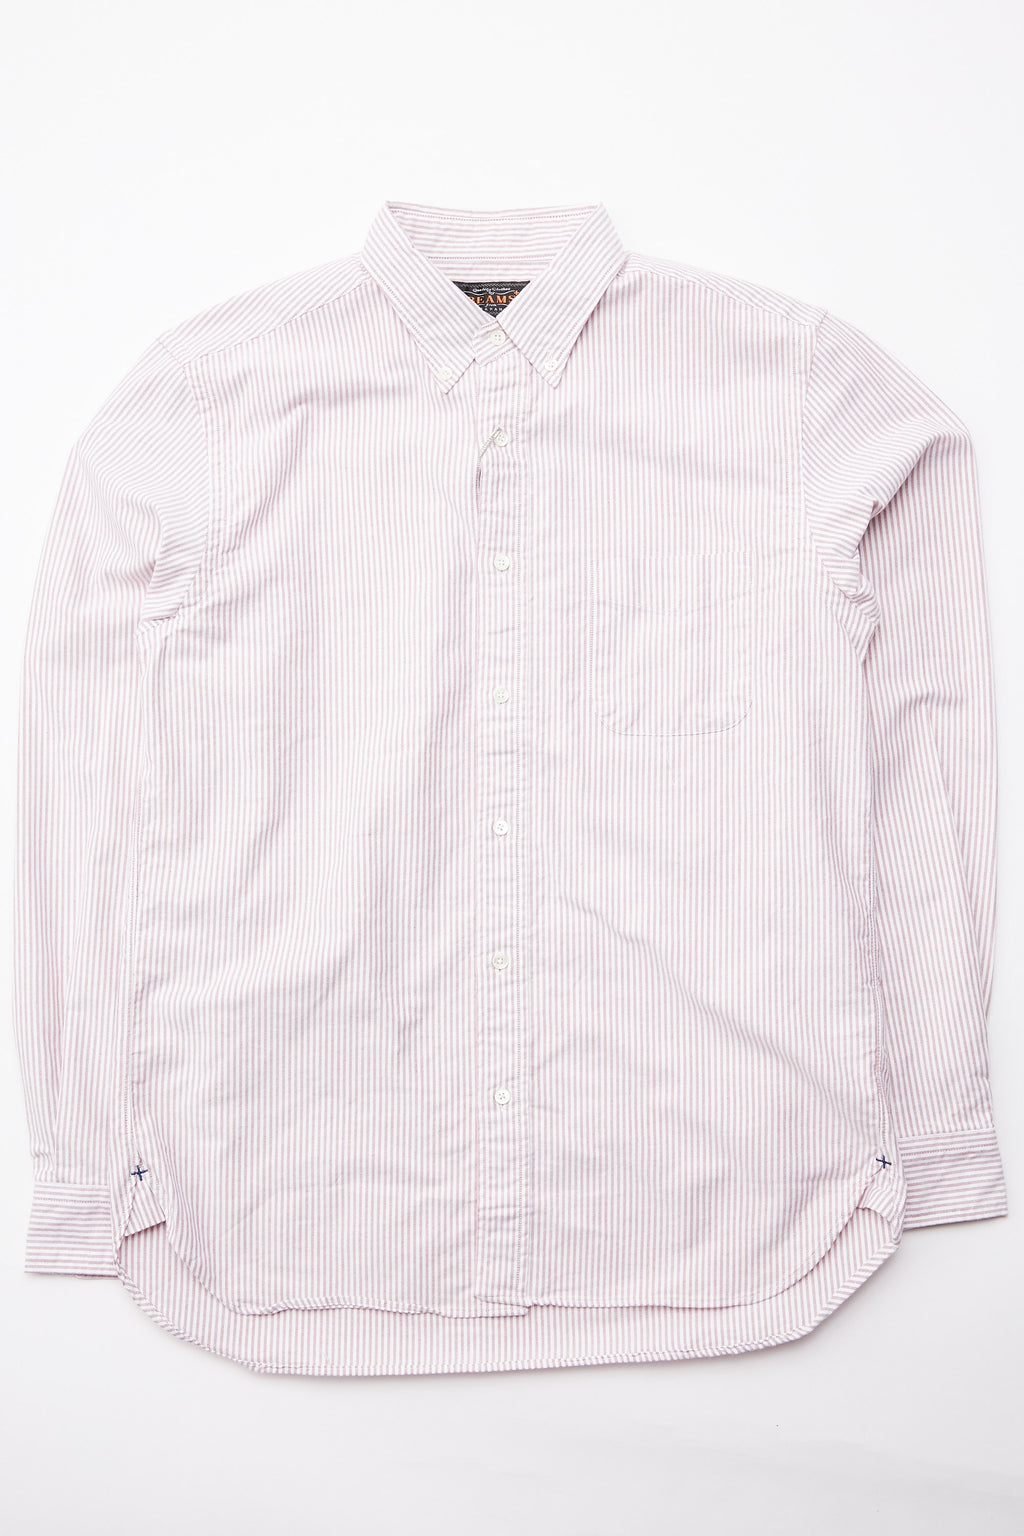 Beams Plus BD Candy Stripe - Wine